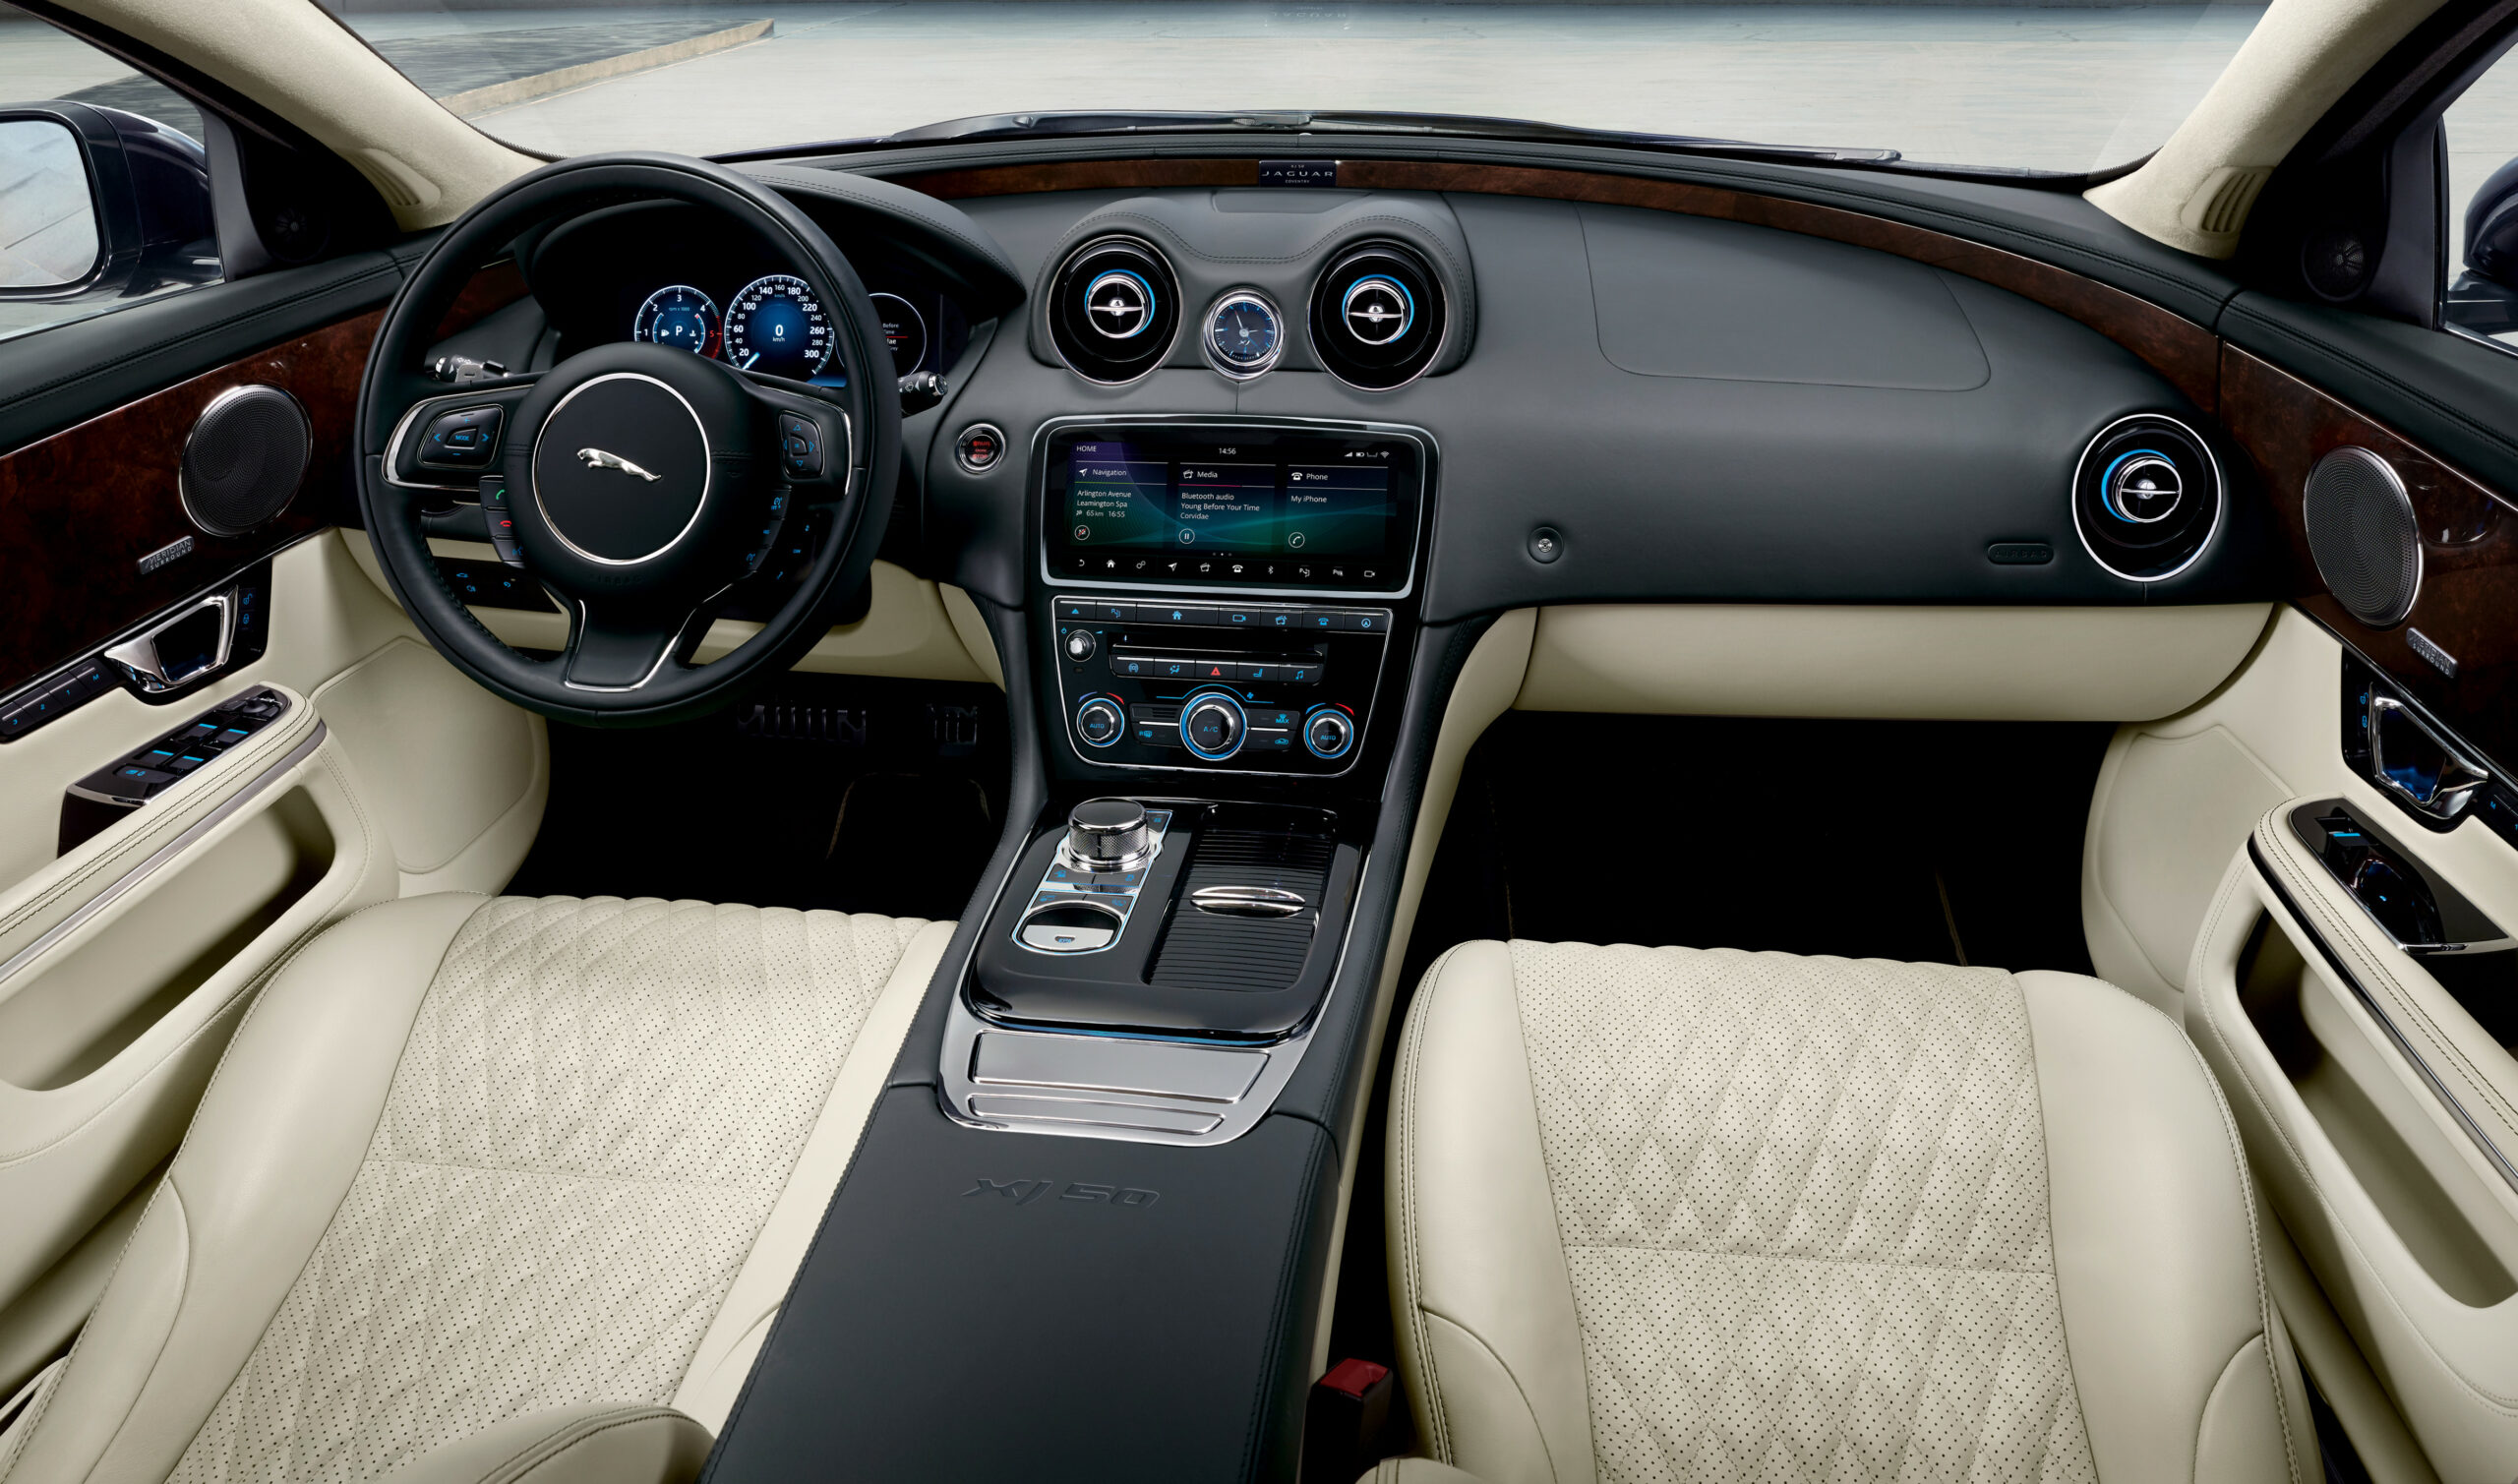 Interior New Jaguar Xe 2022 Interior